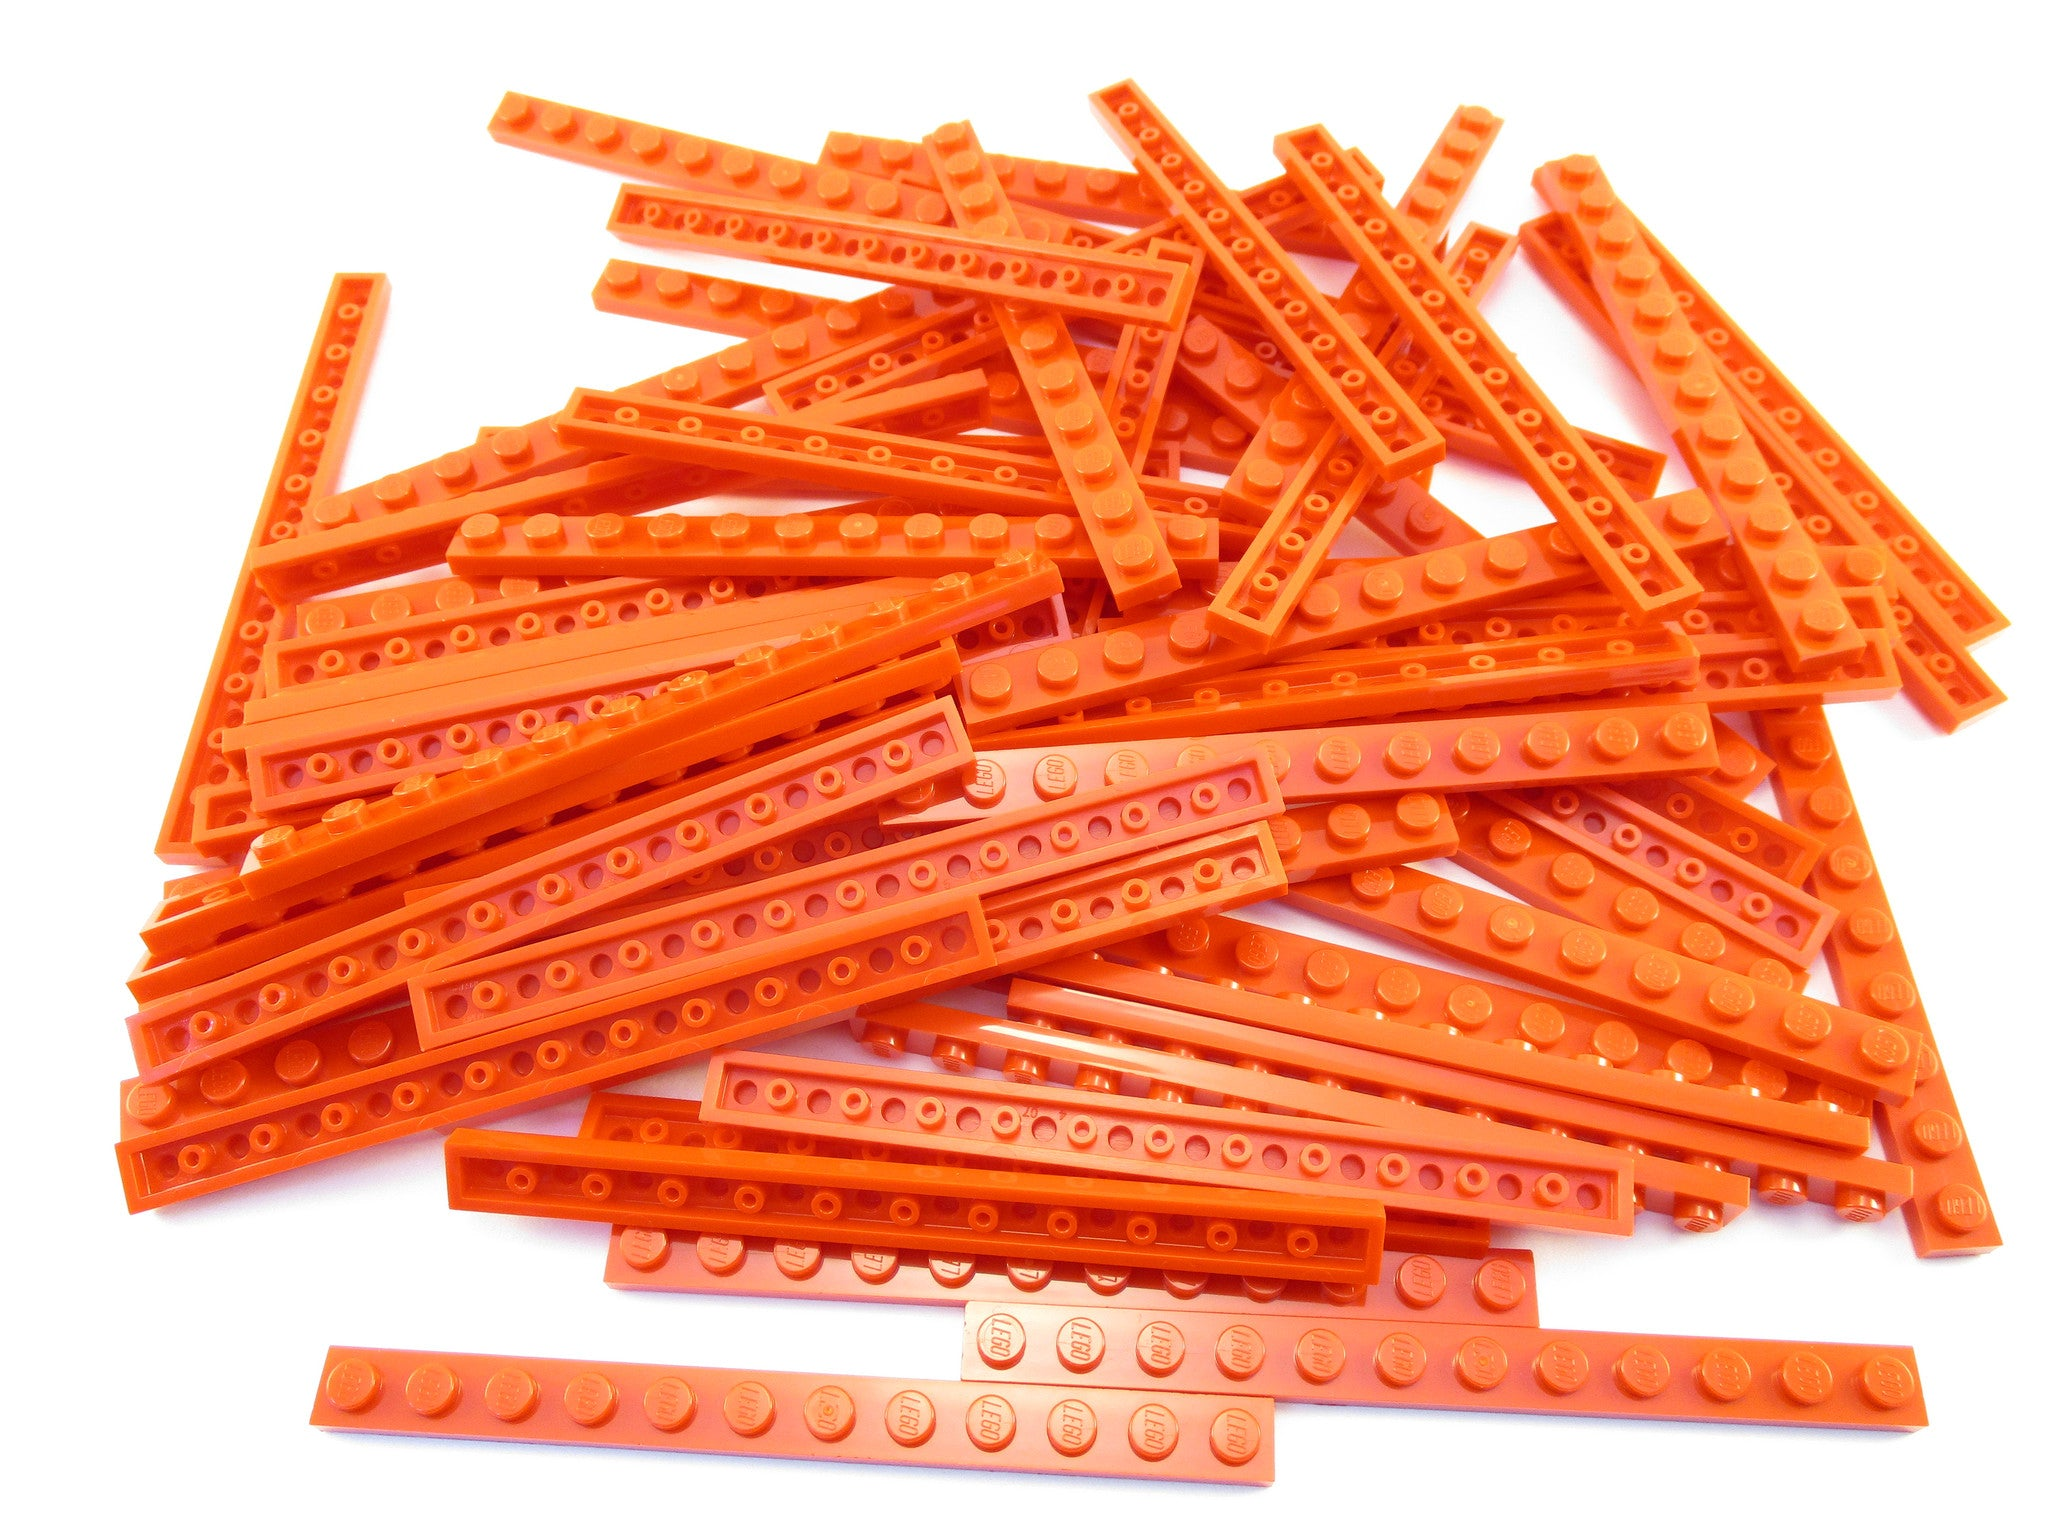 LEGO Red Plate 1x12 Lot of 50 Parts Pieces 60479